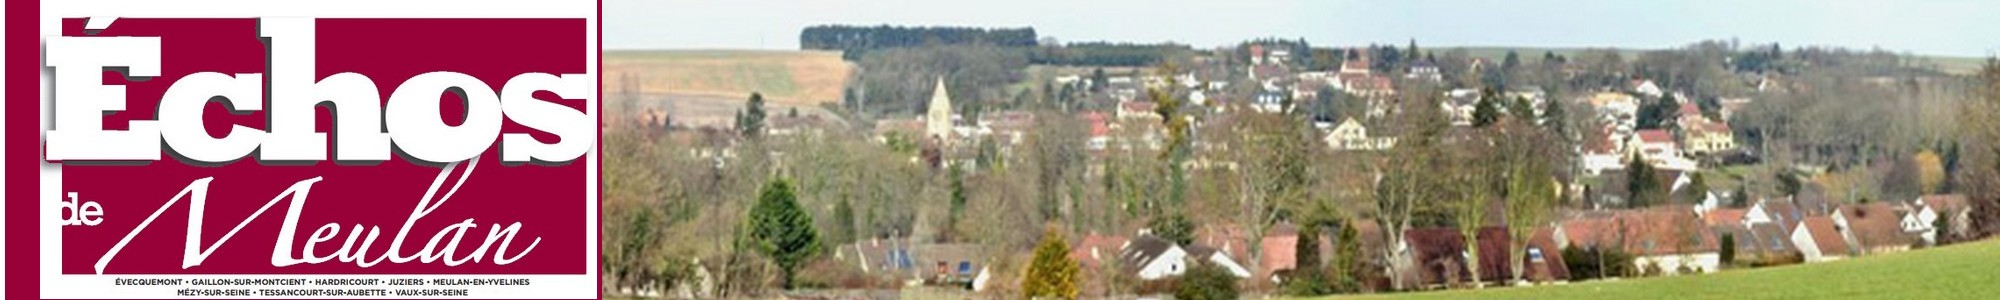 Tessancourt-sur-aubette